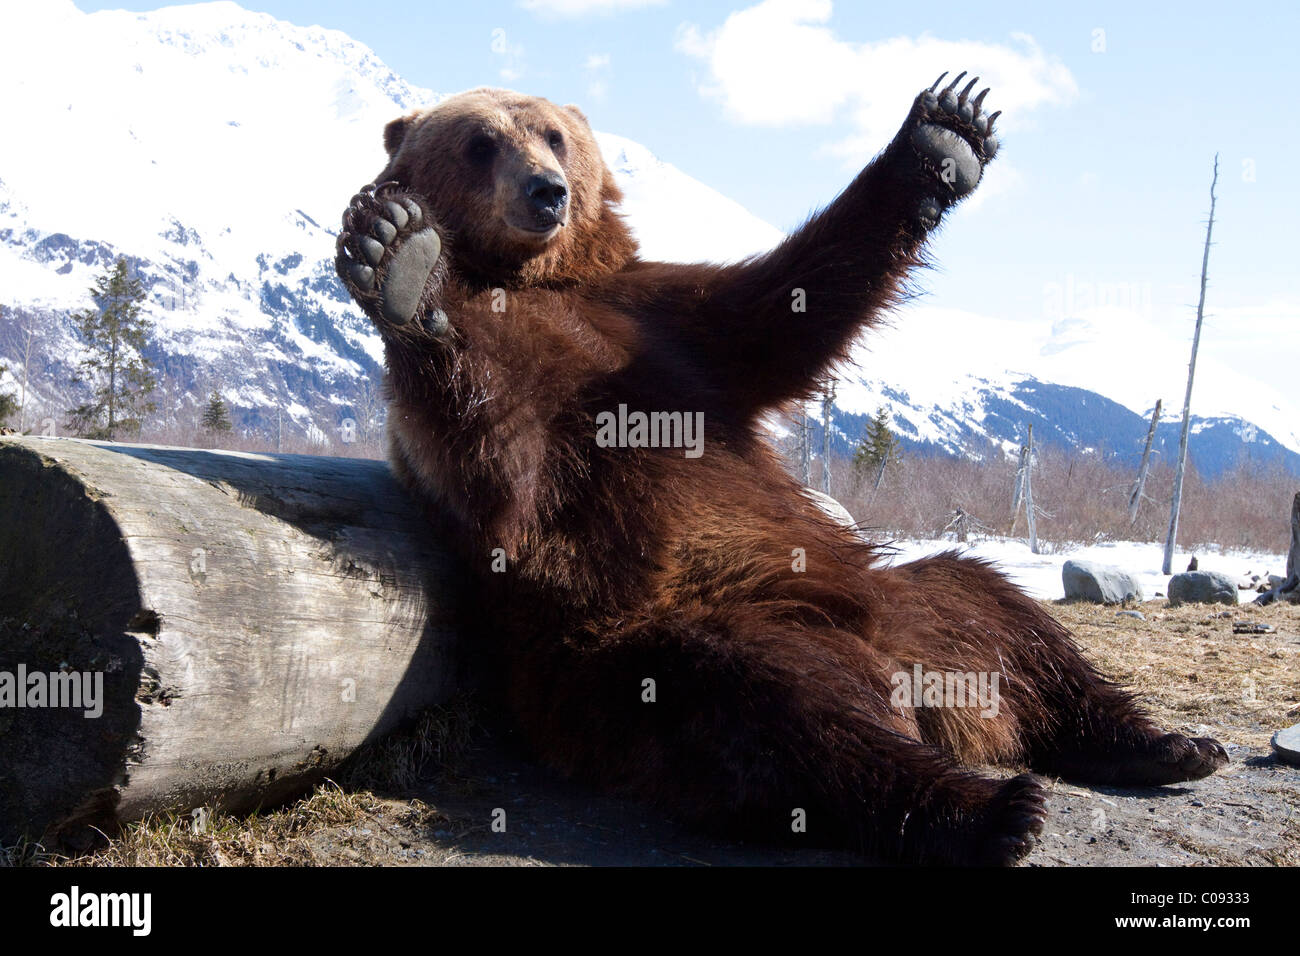 An adult Brown bear leans playfully against a log at the Alaska Wildlife Conservation Center near Portage, CAPTIVE - Stock Image